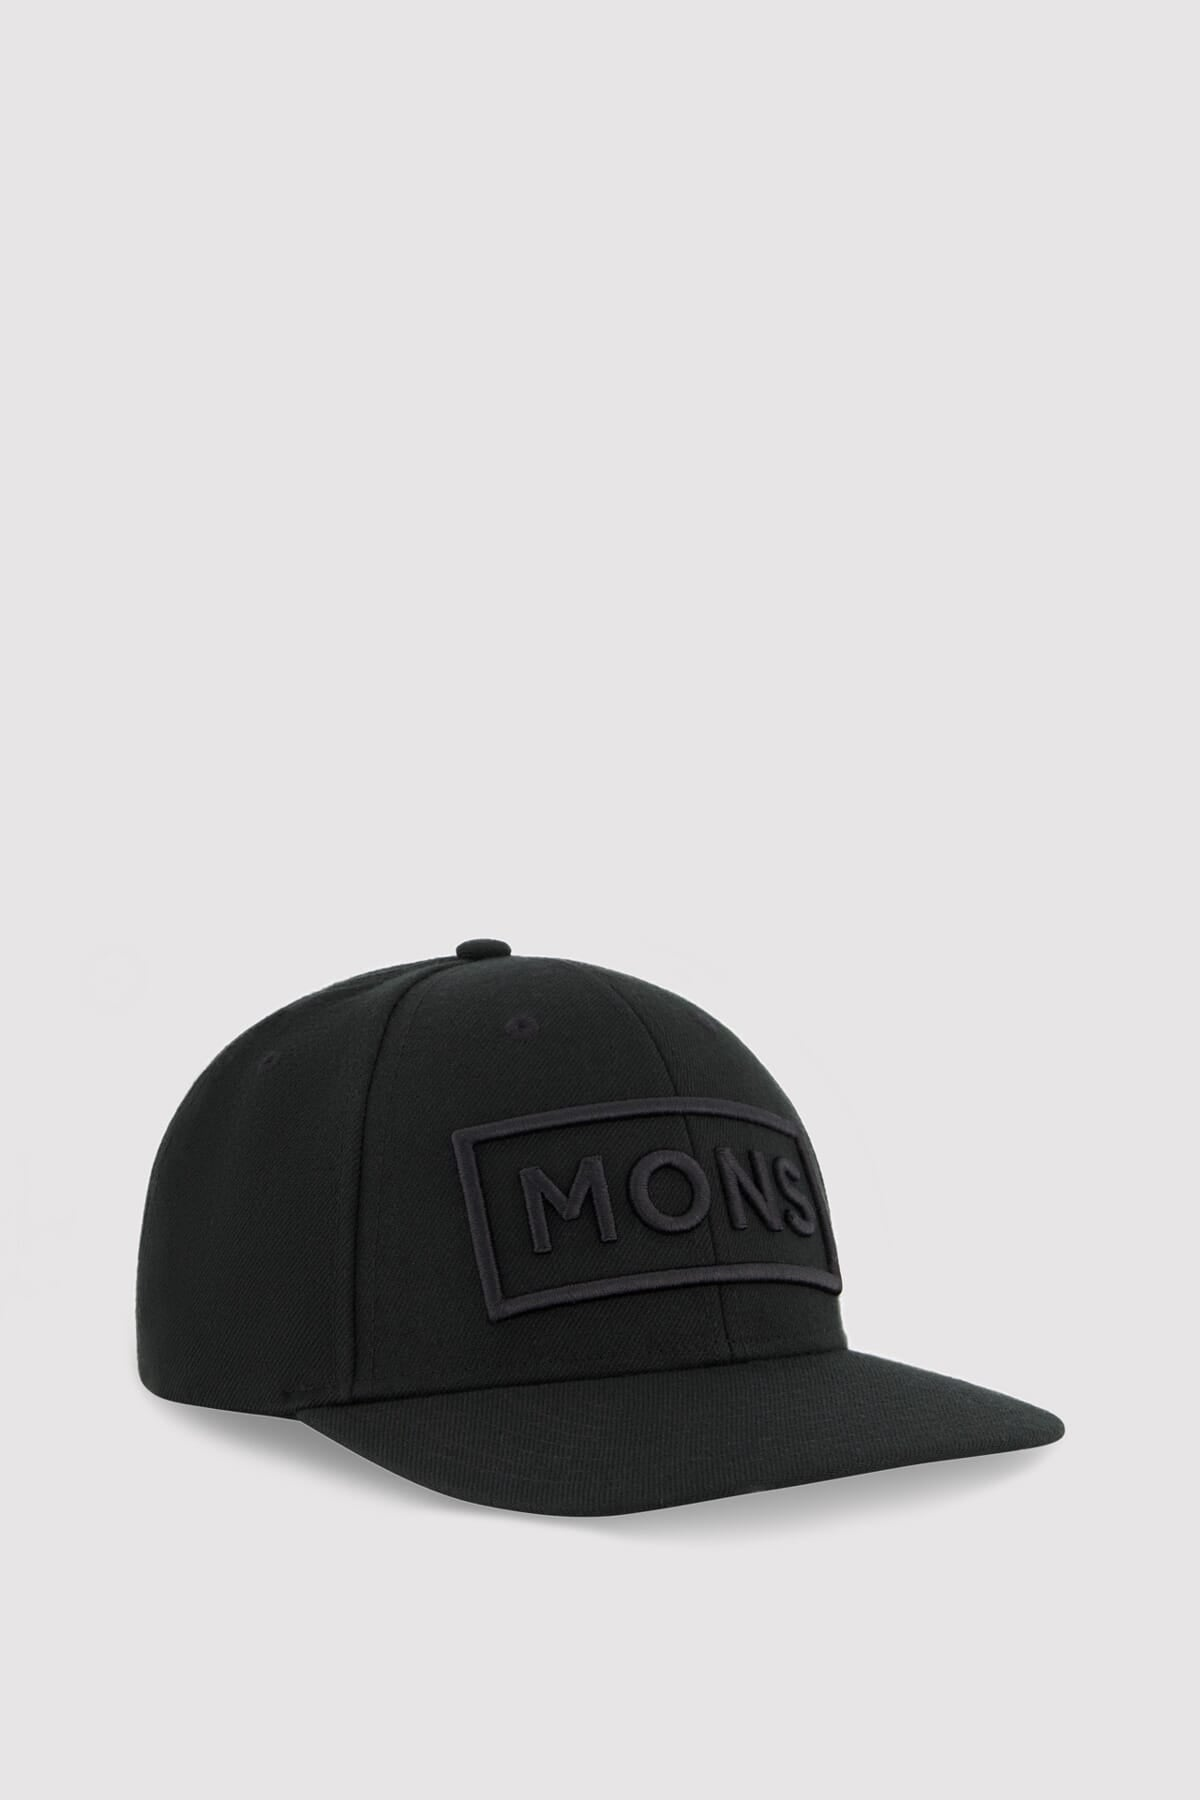 Wool Connor Cap - Black